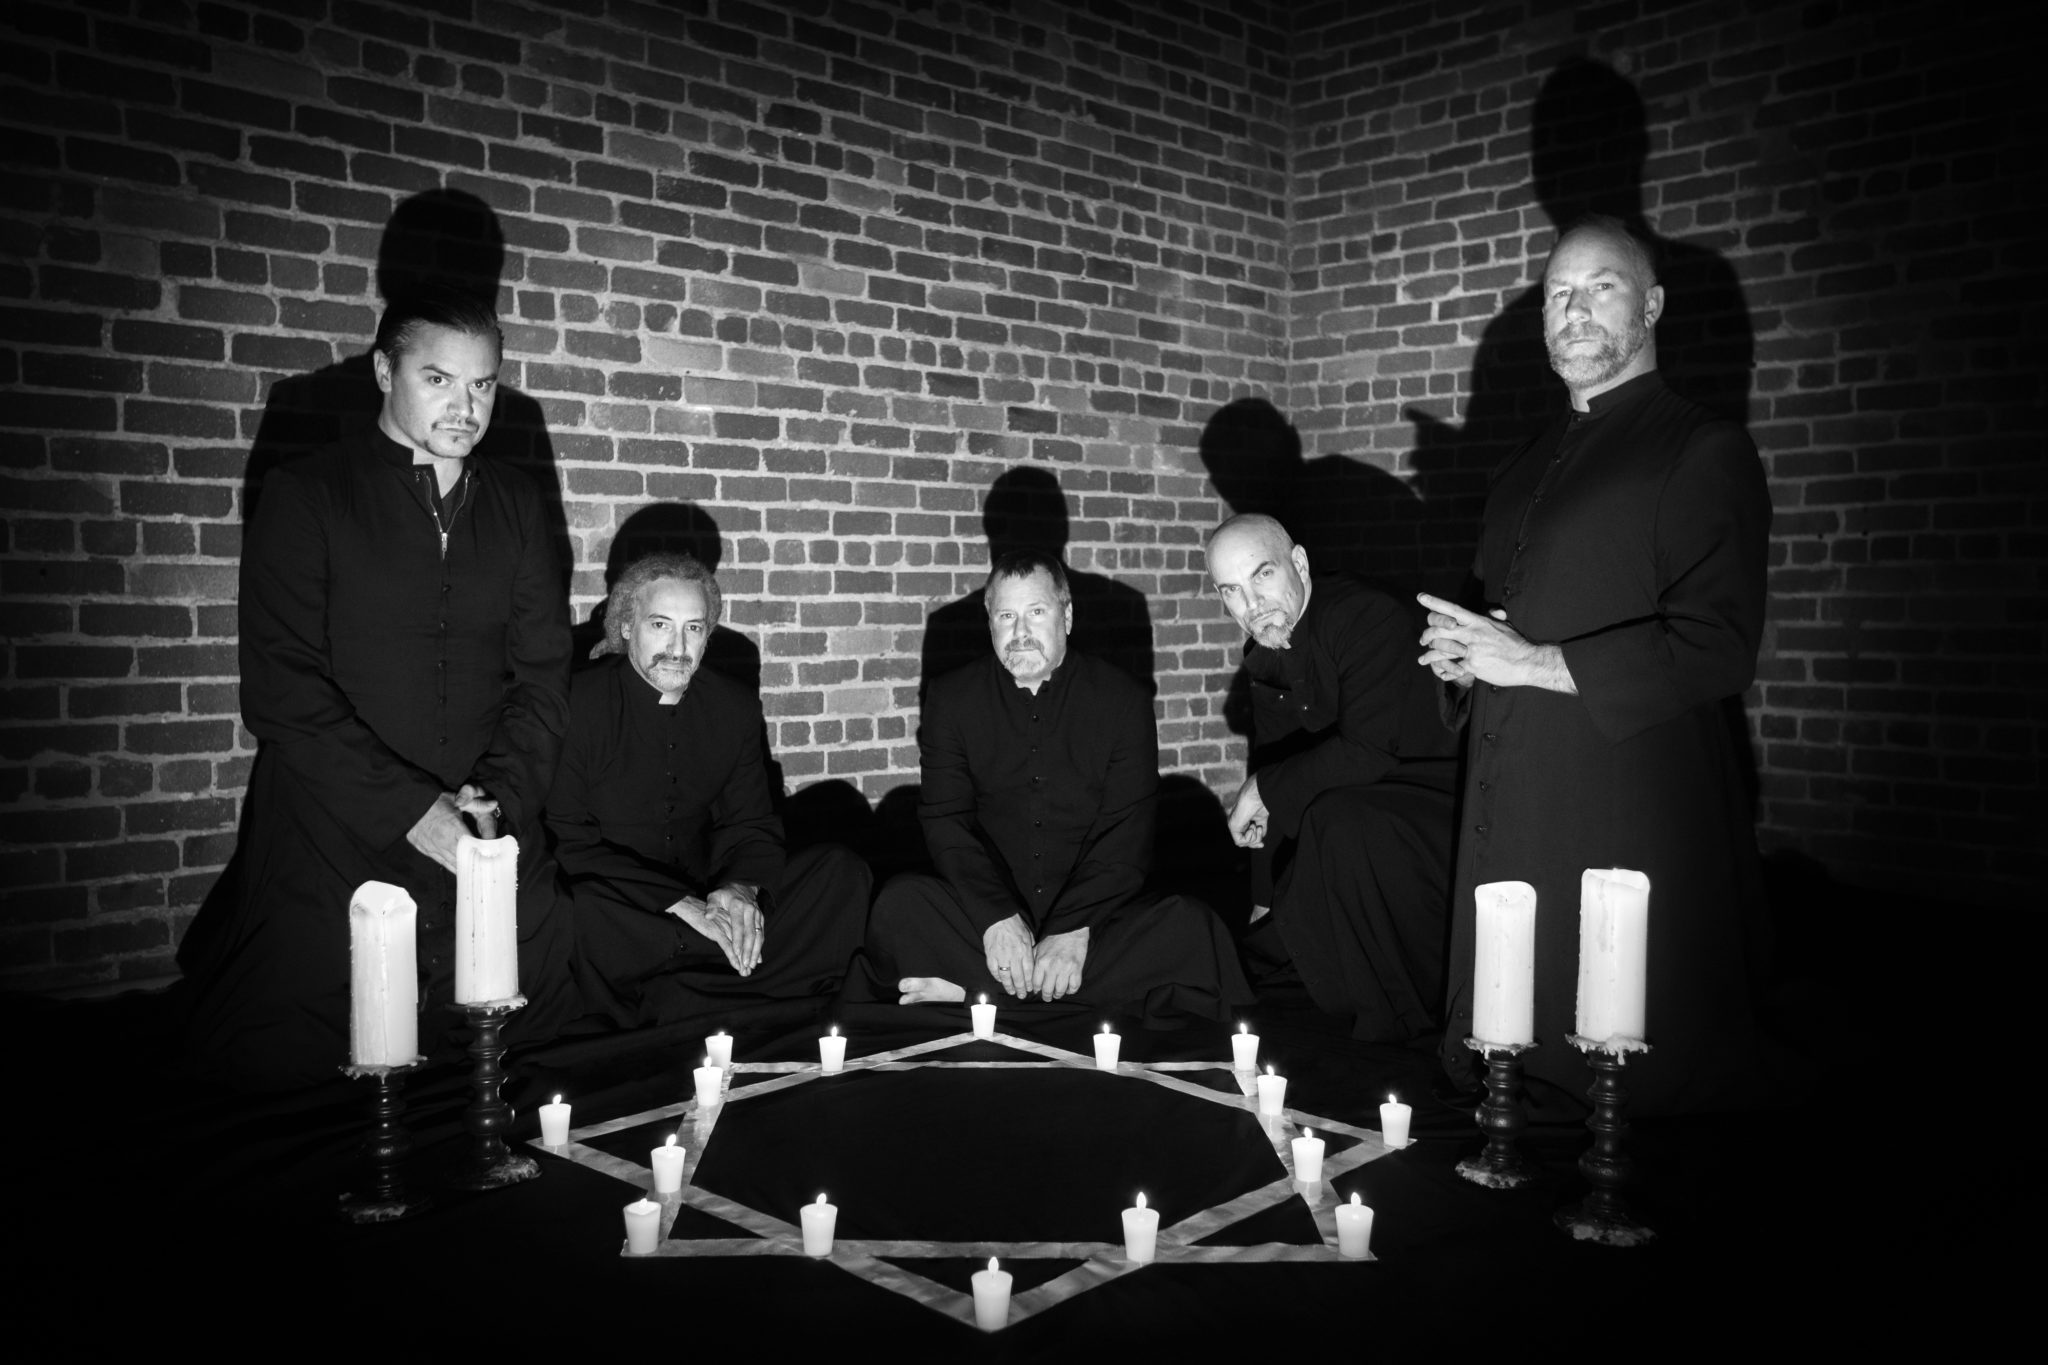 FAITH NO MORE RELEASE SOL INVICTUS ON MAY 19